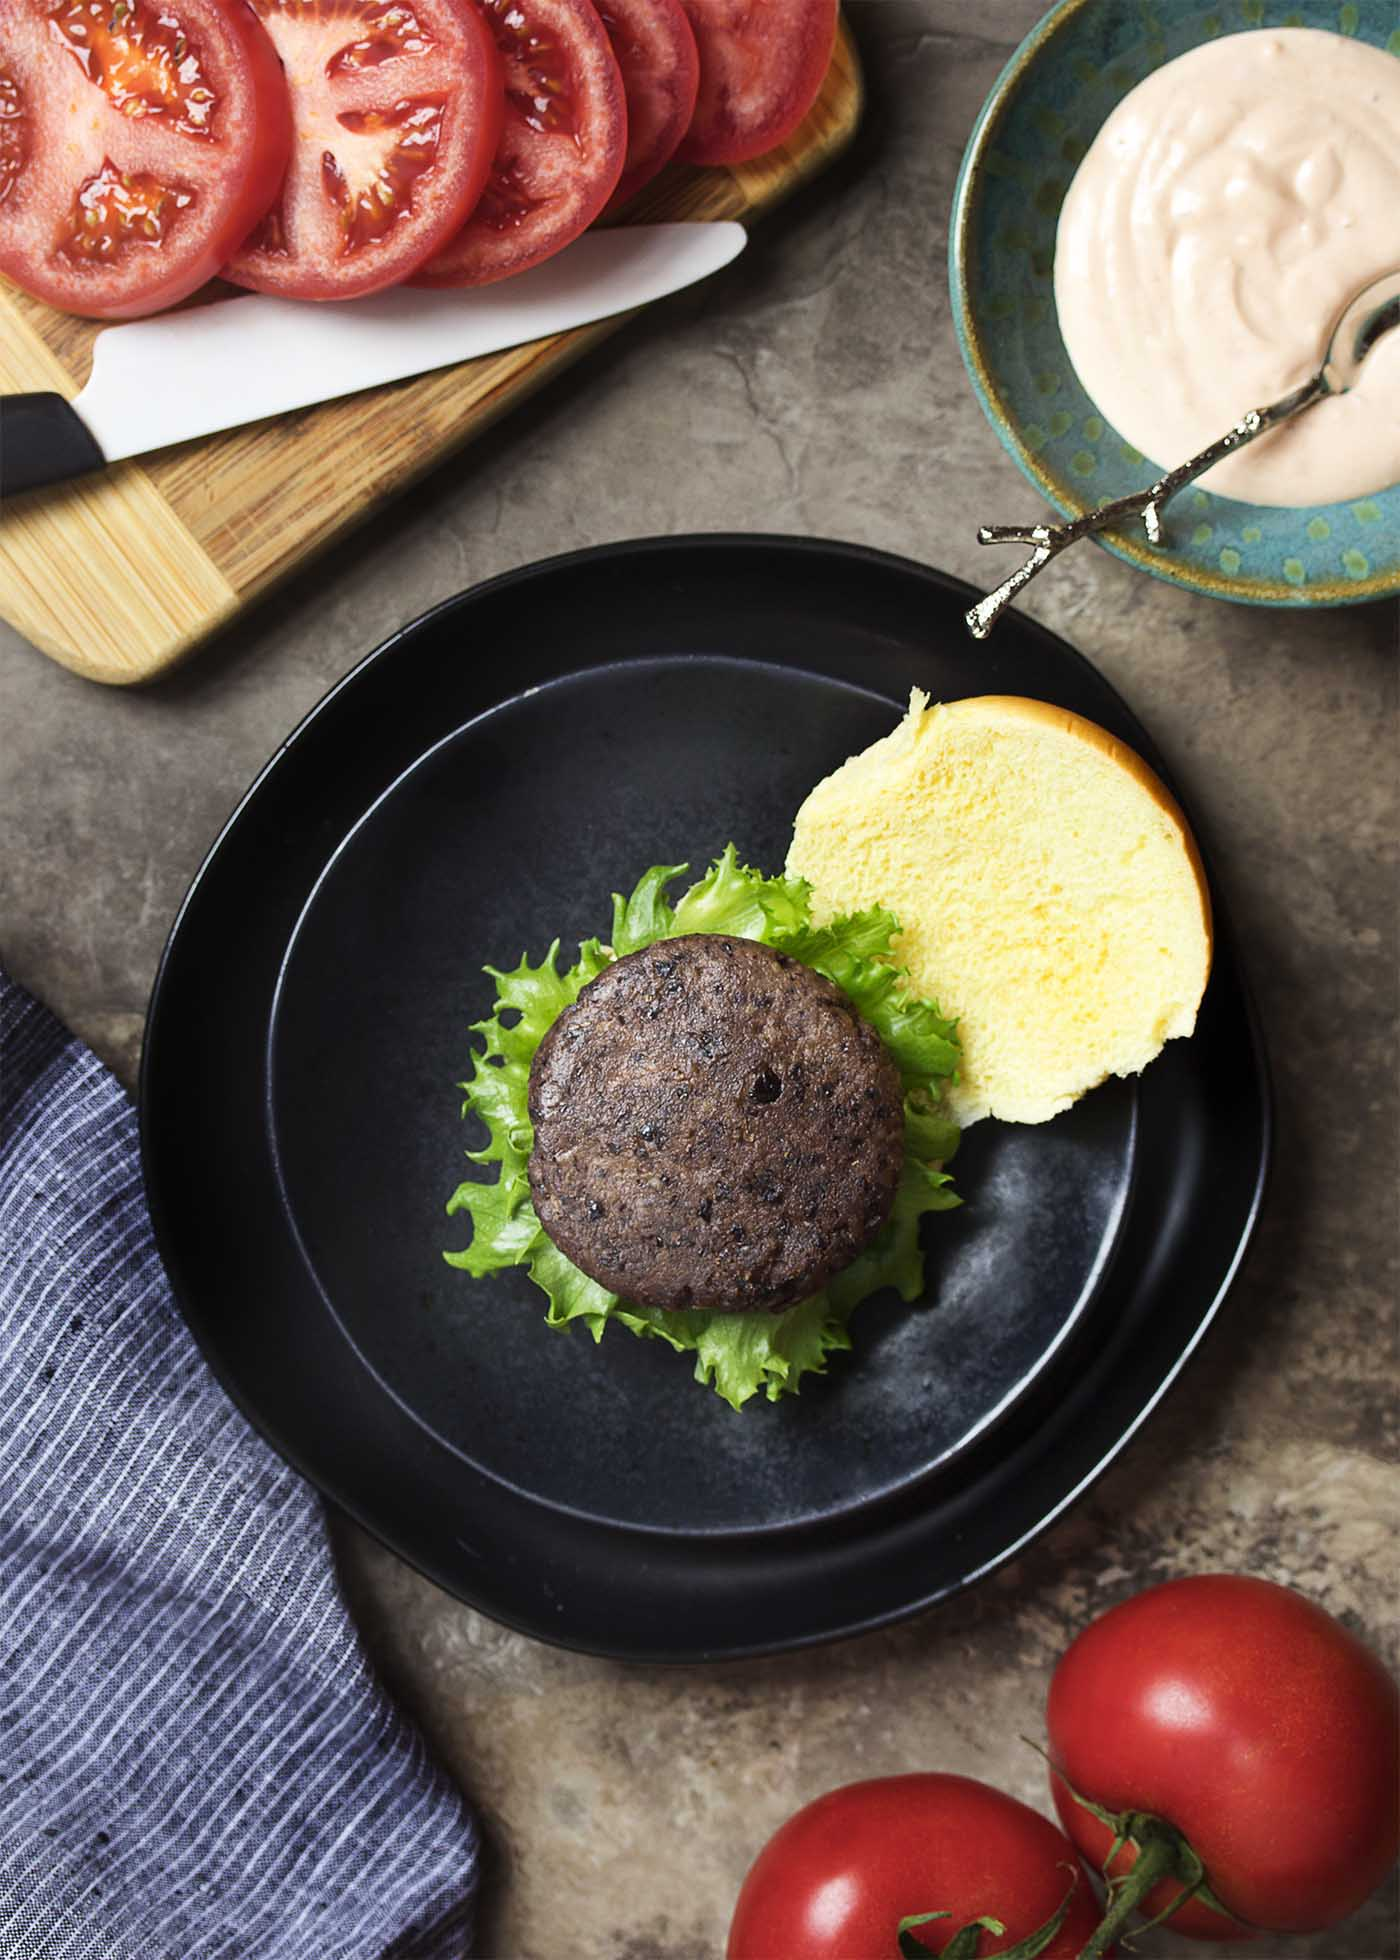 Top view of a black bean burger on a bun with lettuce ready for a slice of tomato and sauce.